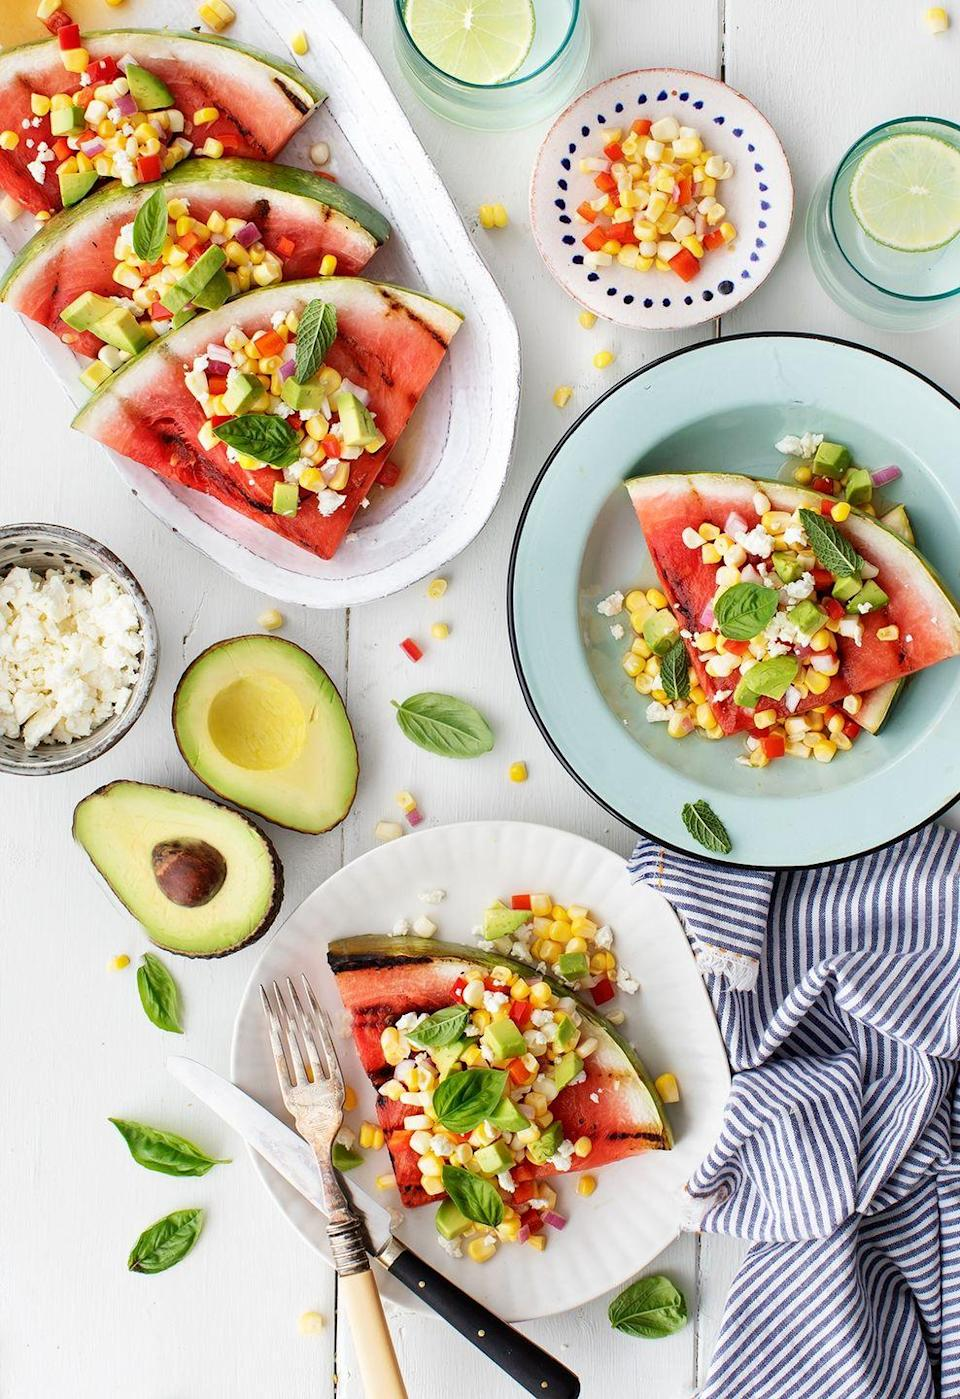 """<p>For an unexpected vegetarian side, consider grilled watermelon topped with a zesty mix of fresh corn, feta, avocado, and basil.</p><p><a href=""""https://www.loveandlemons.com/grilled-watermelon/"""" rel=""""nofollow noopener"""" target=""""_blank"""" data-ylk=""""slk:Get the recipe."""" class=""""link rapid-noclick-resp"""">Get the recipe. </a></p>"""